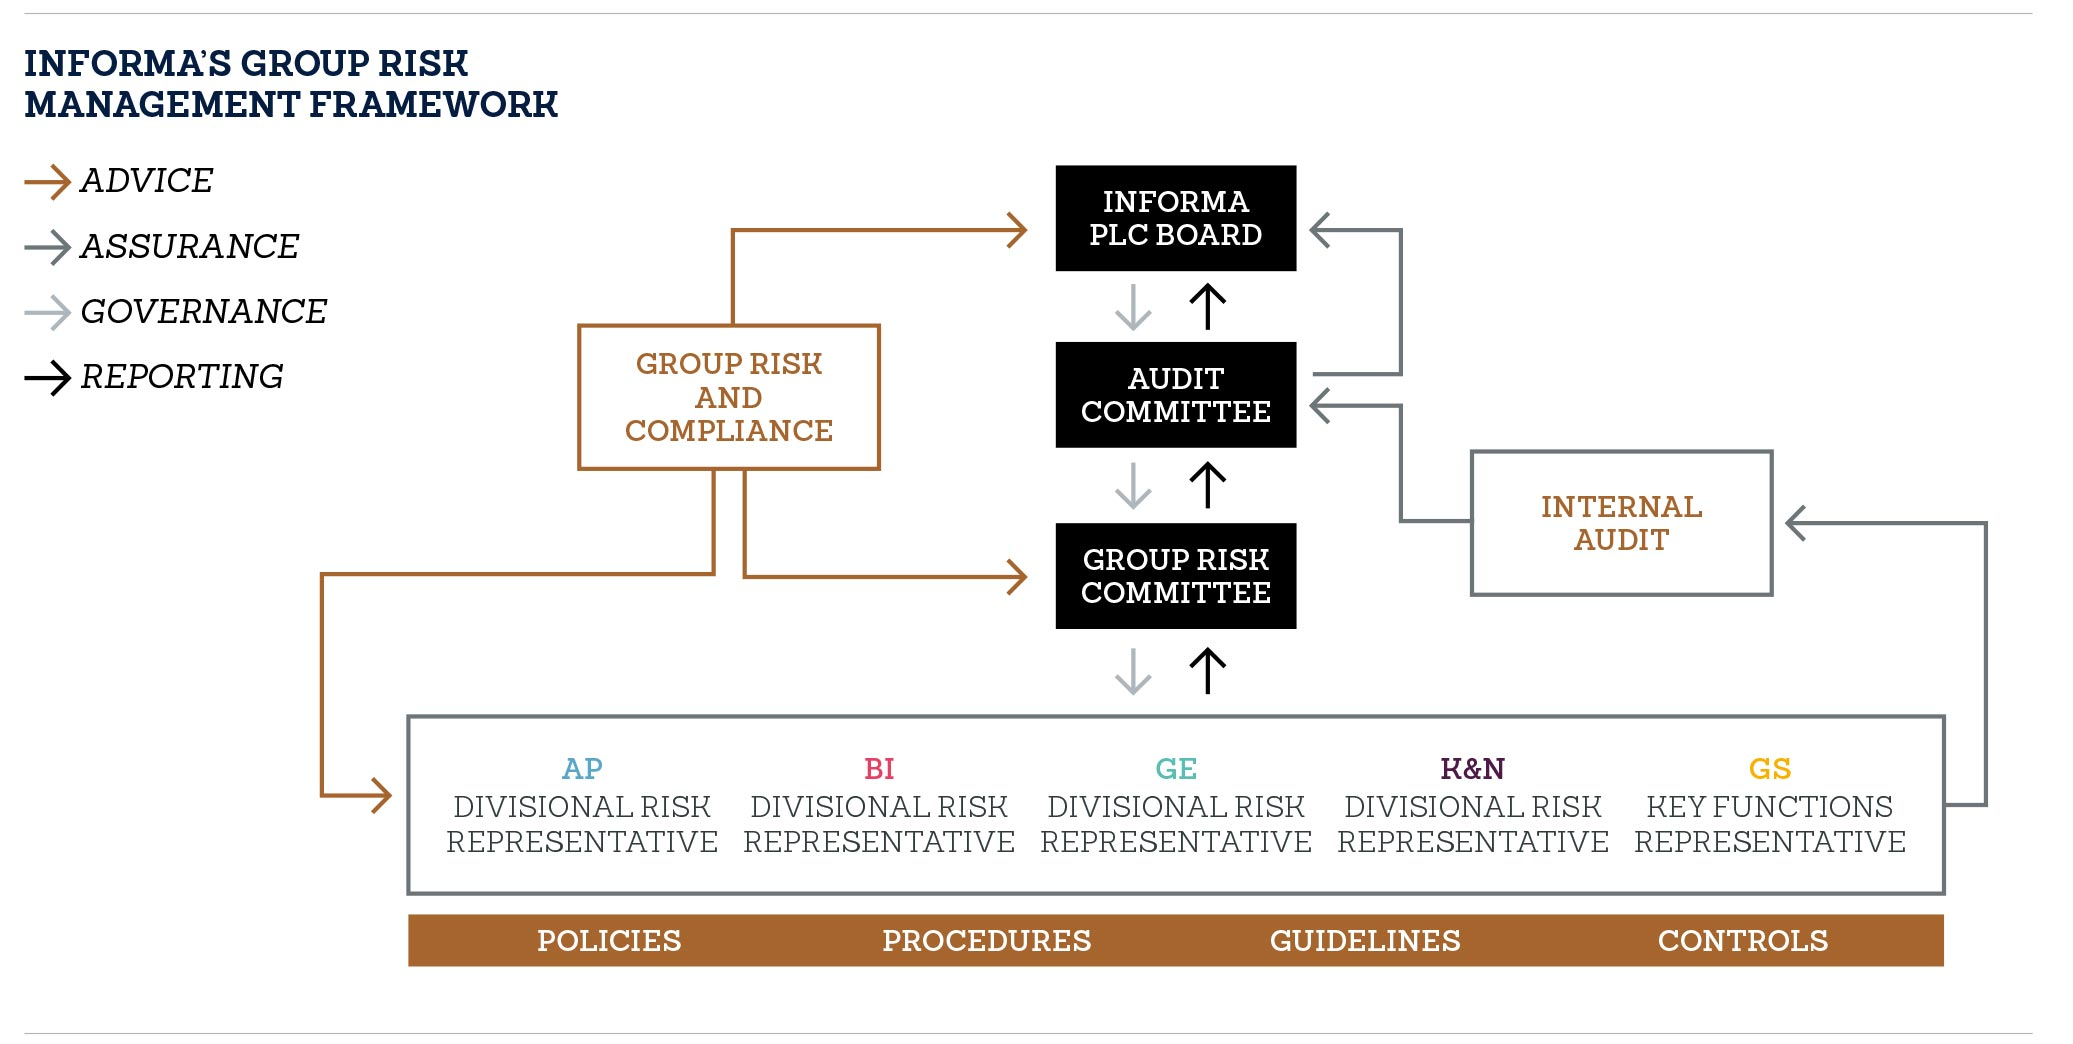 INFORMA'S GROUP RISK MANAGEMENT FRAMEWORK